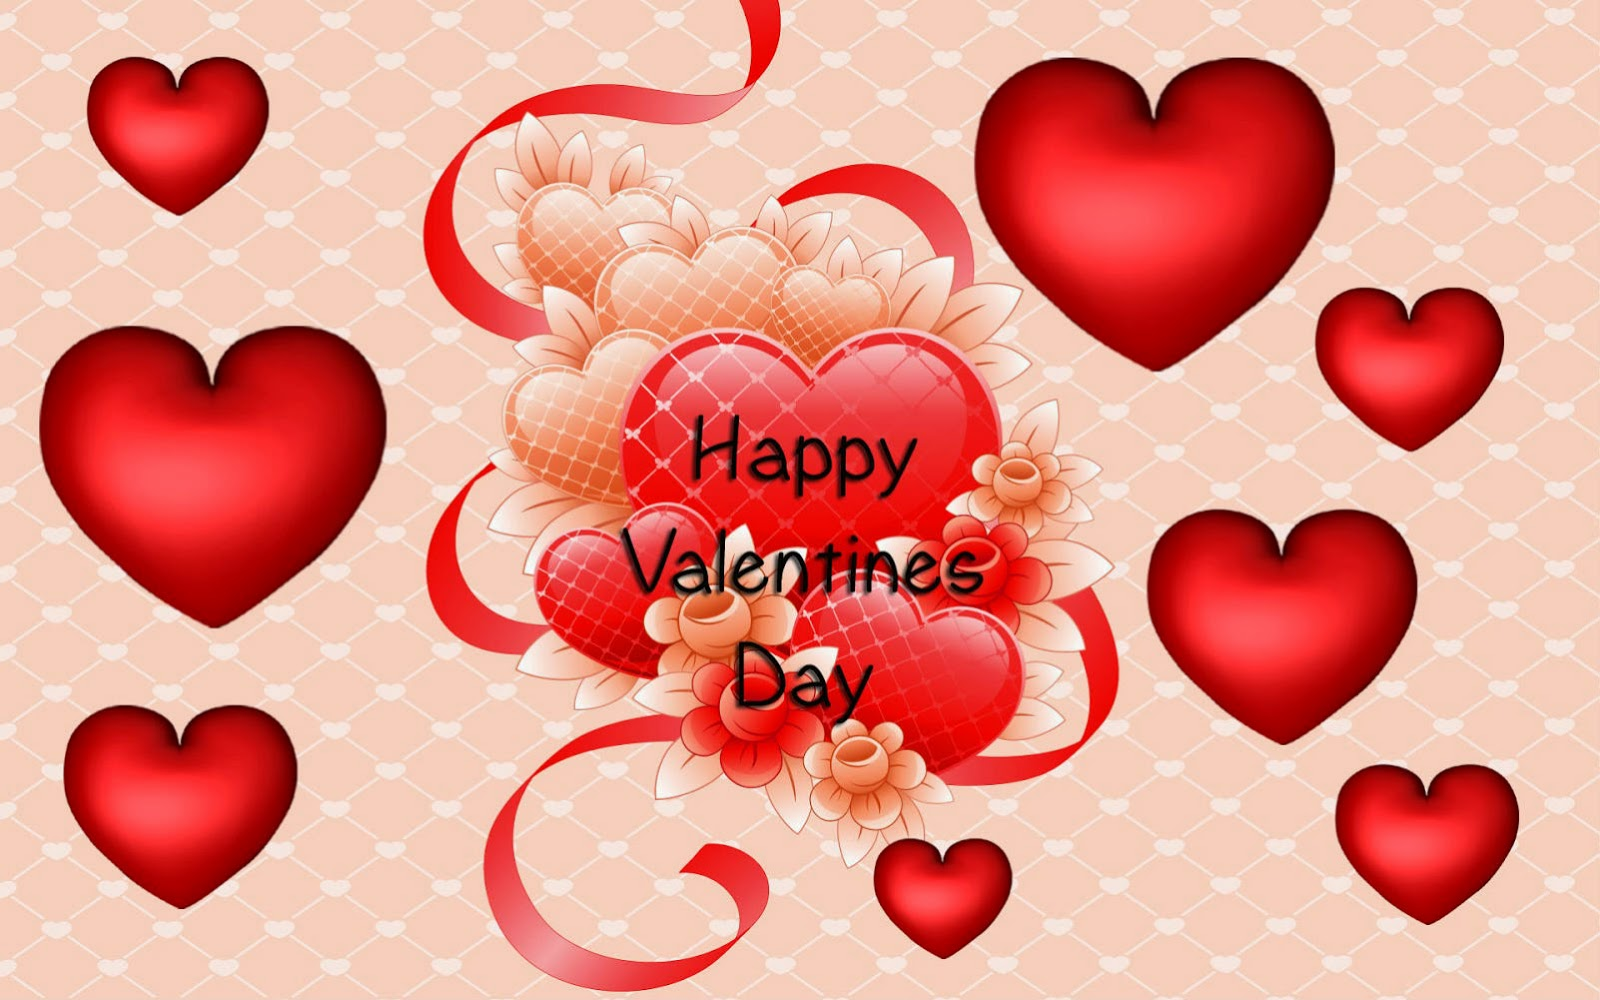 New Facebook Happy Valentines Day greeting cards – Nice Valentine Cards